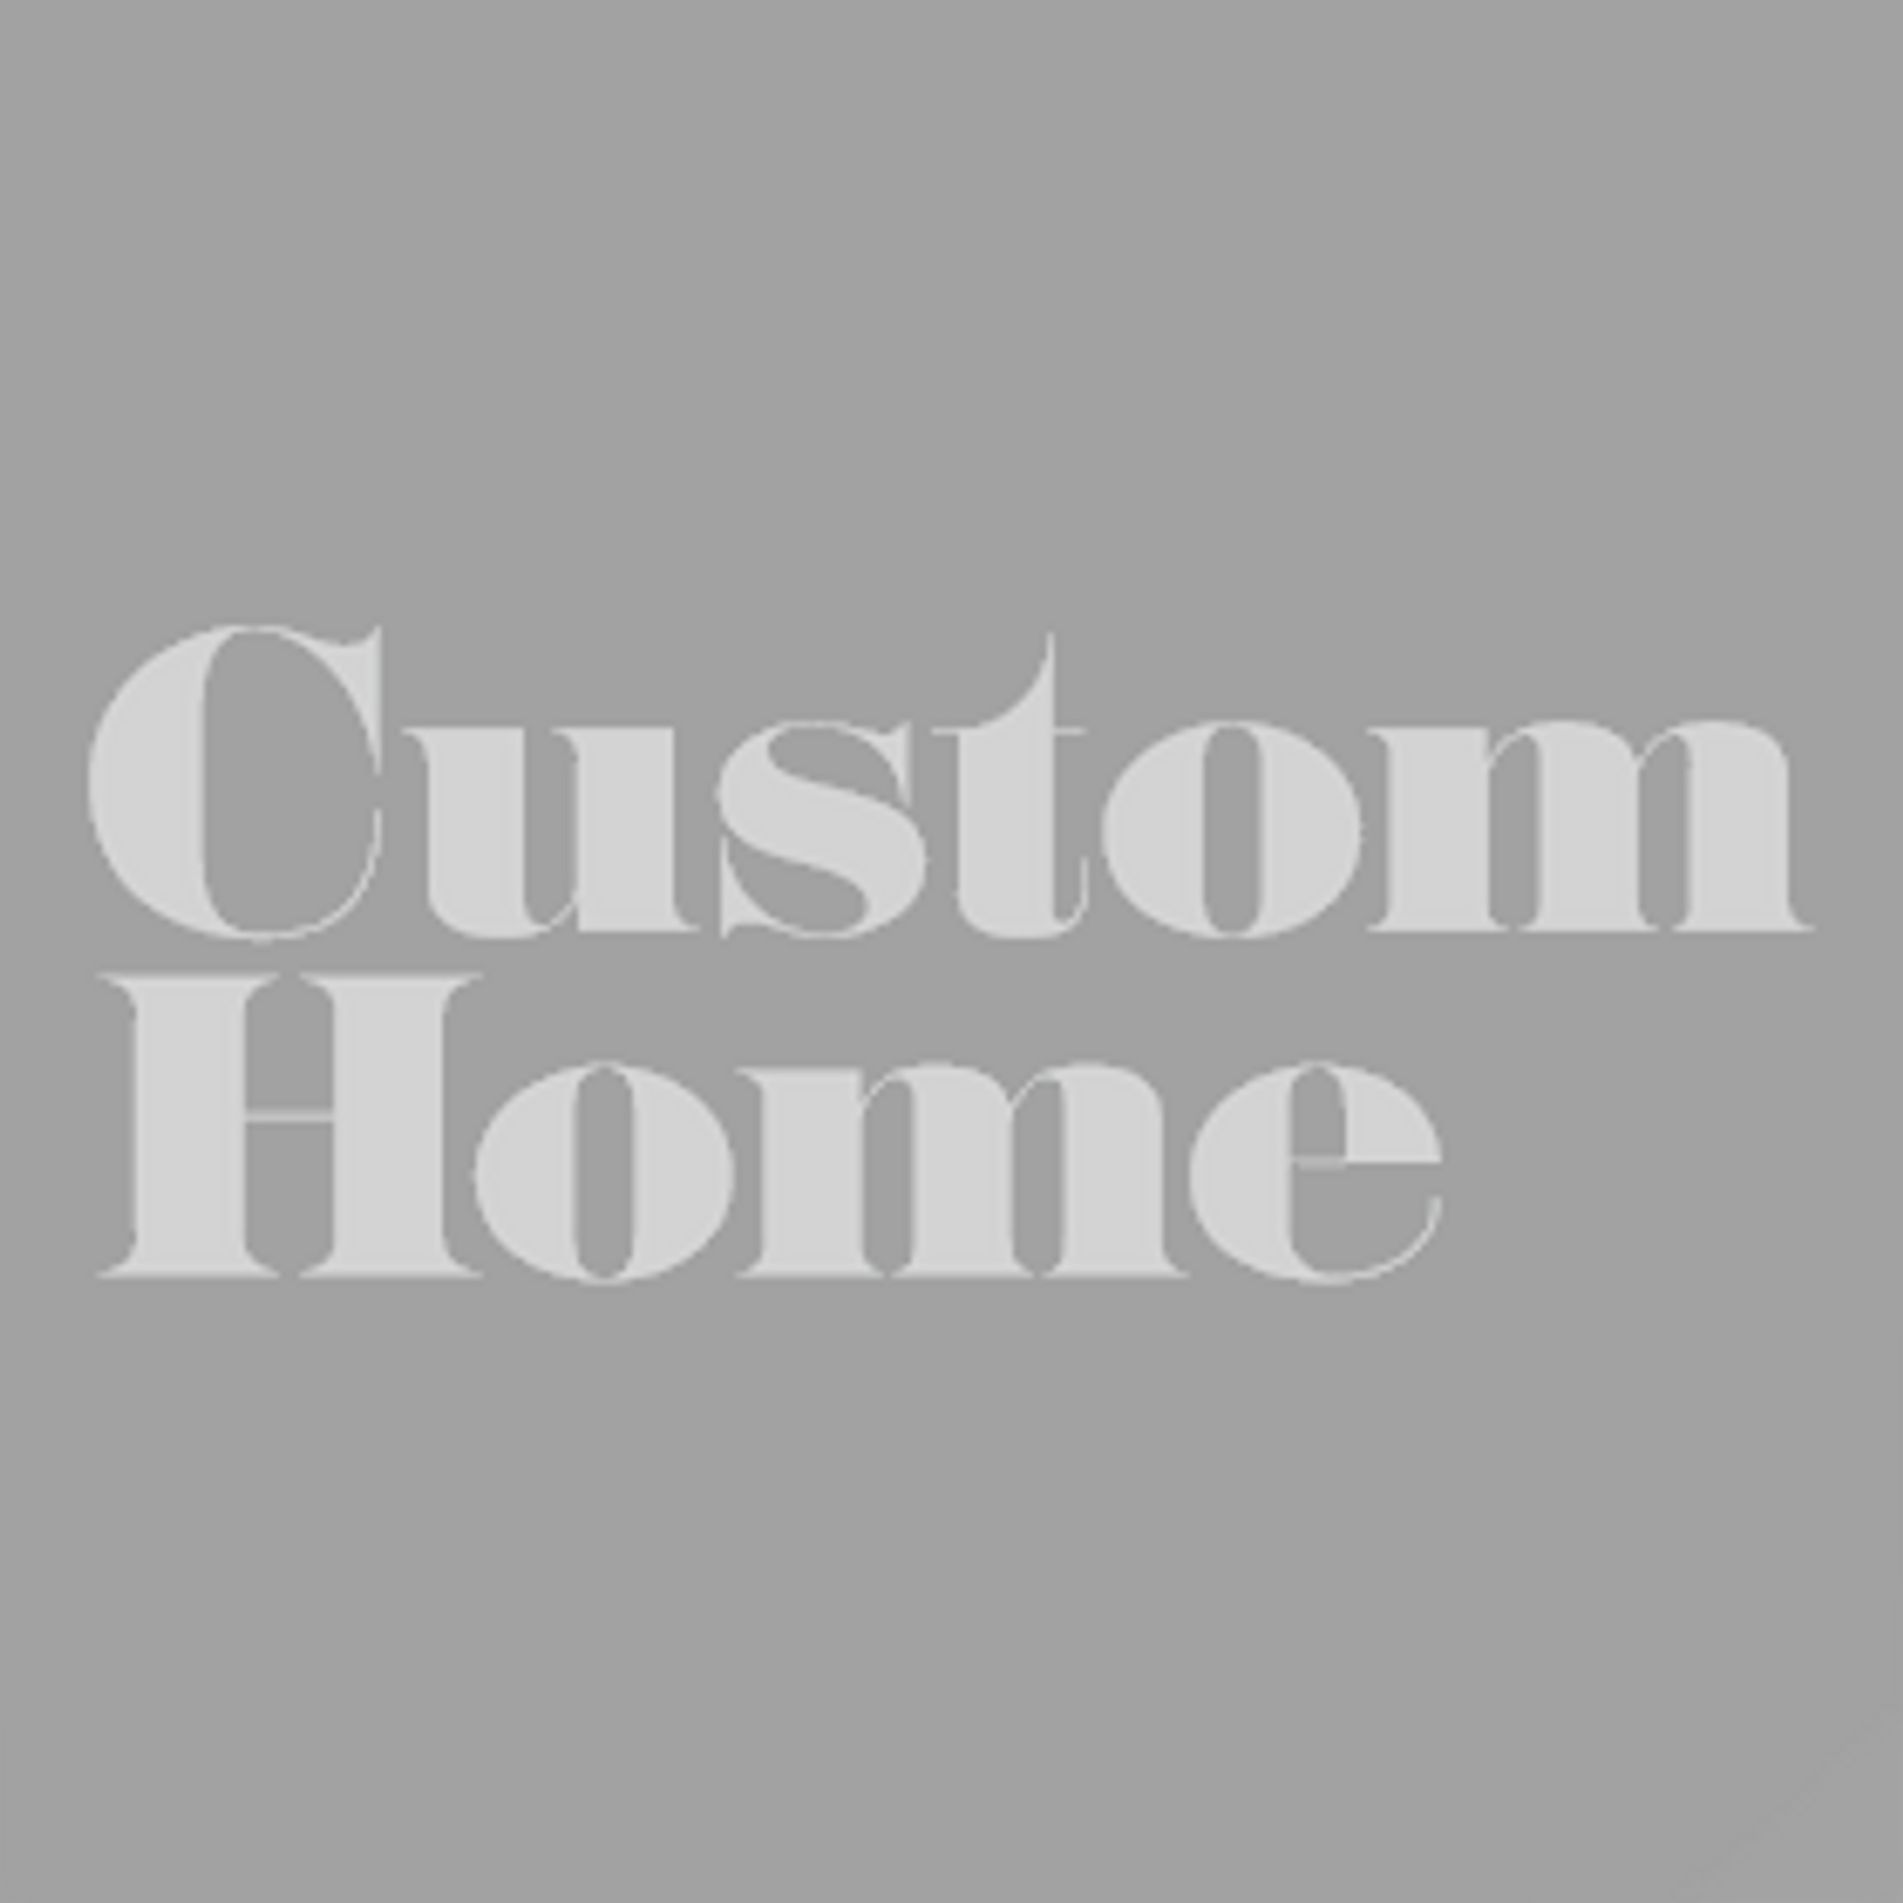 custom_home_280px.png